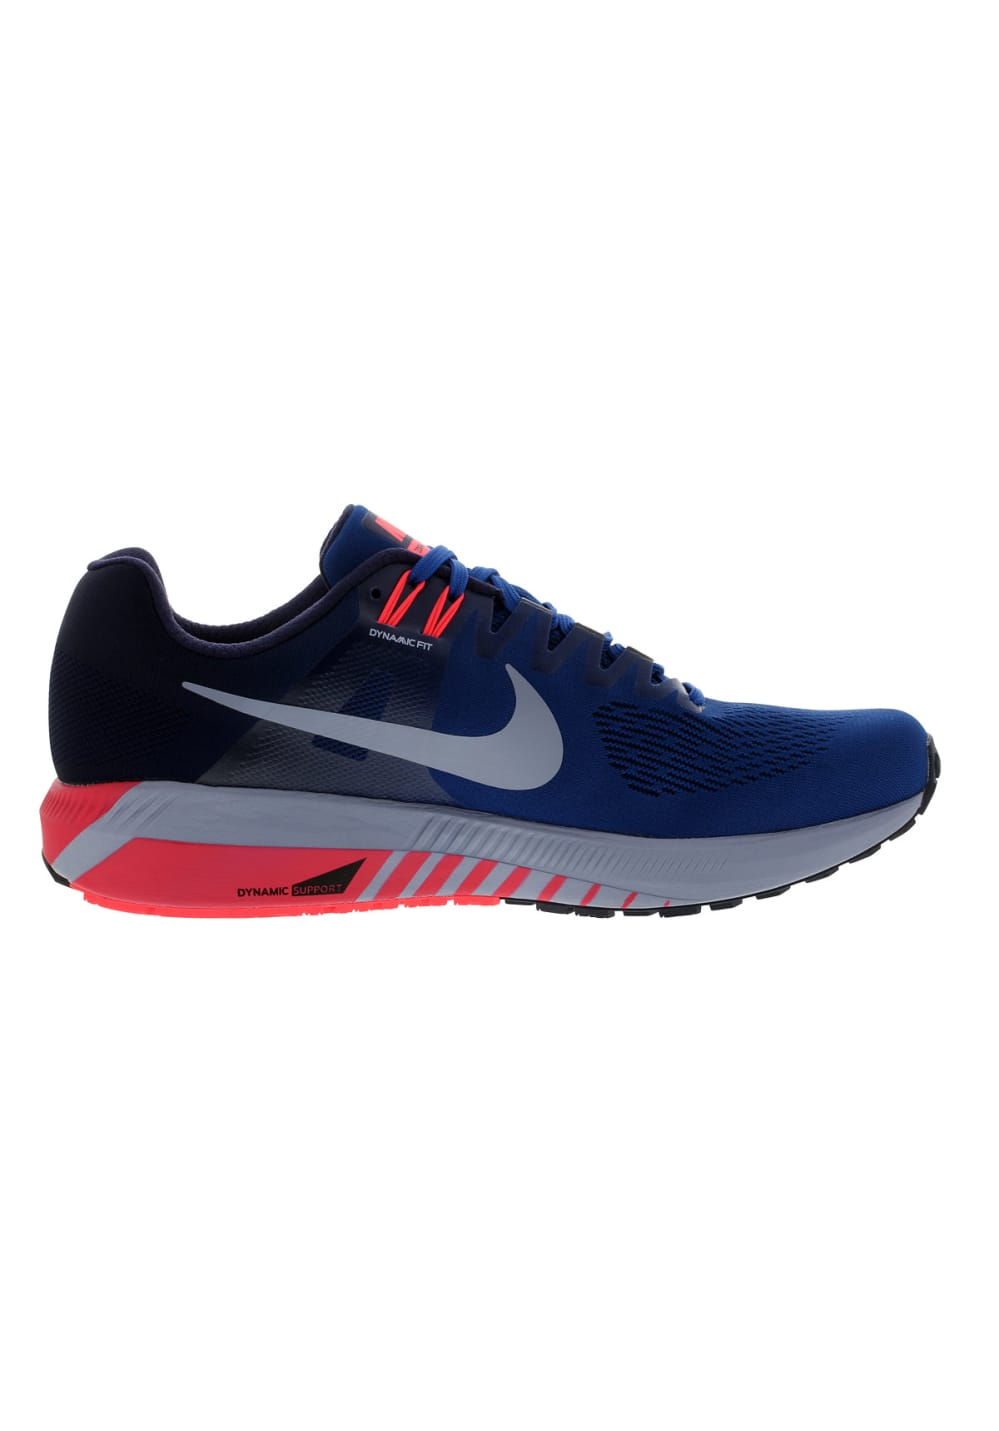 Zoom Homme Running Nike Chaussures Structure Bleu Air 21 Pour QdChtsxr